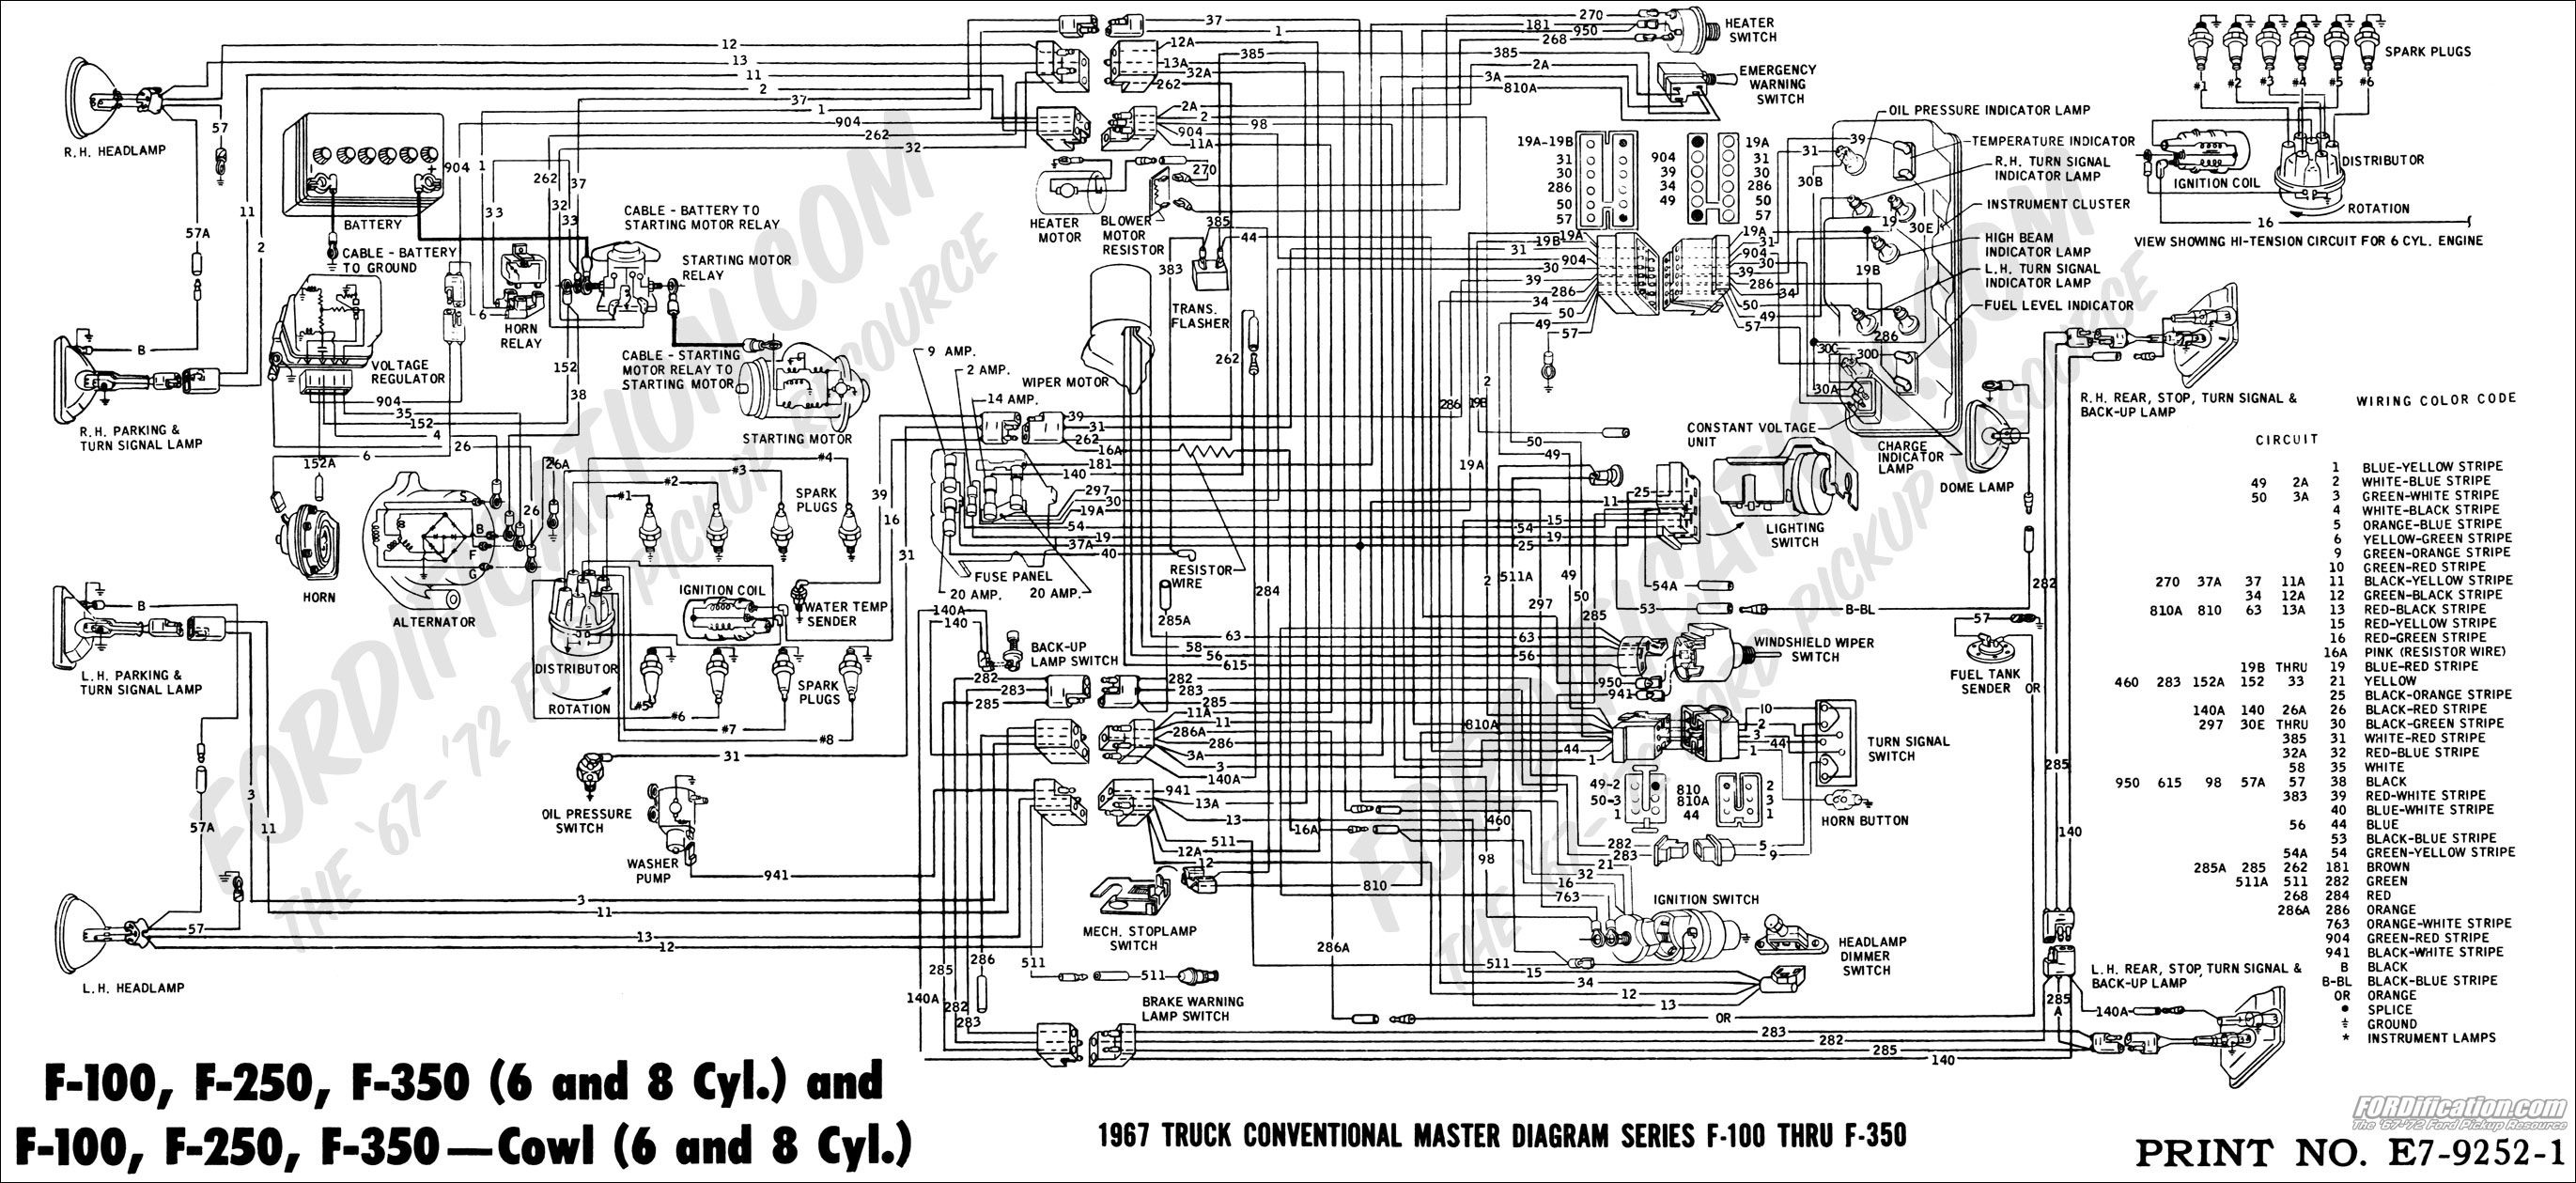 67masterdiagram wiring diagrams ford 2014 f150 readingrat net 1990 ford alternator wiring diagram at creativeand.co